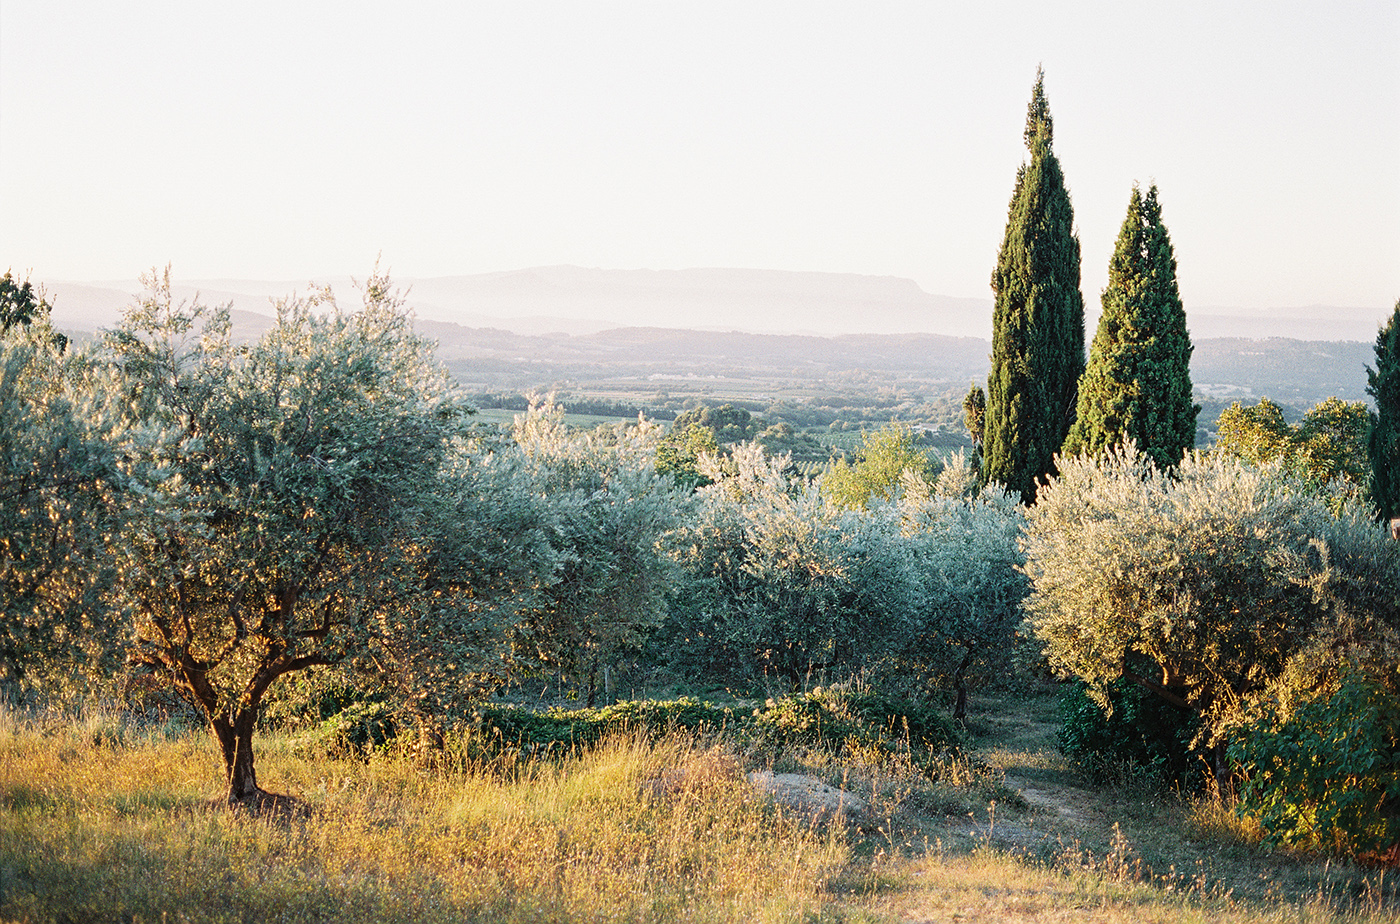 Feather and Stone Photography Rustic Italian Landscape